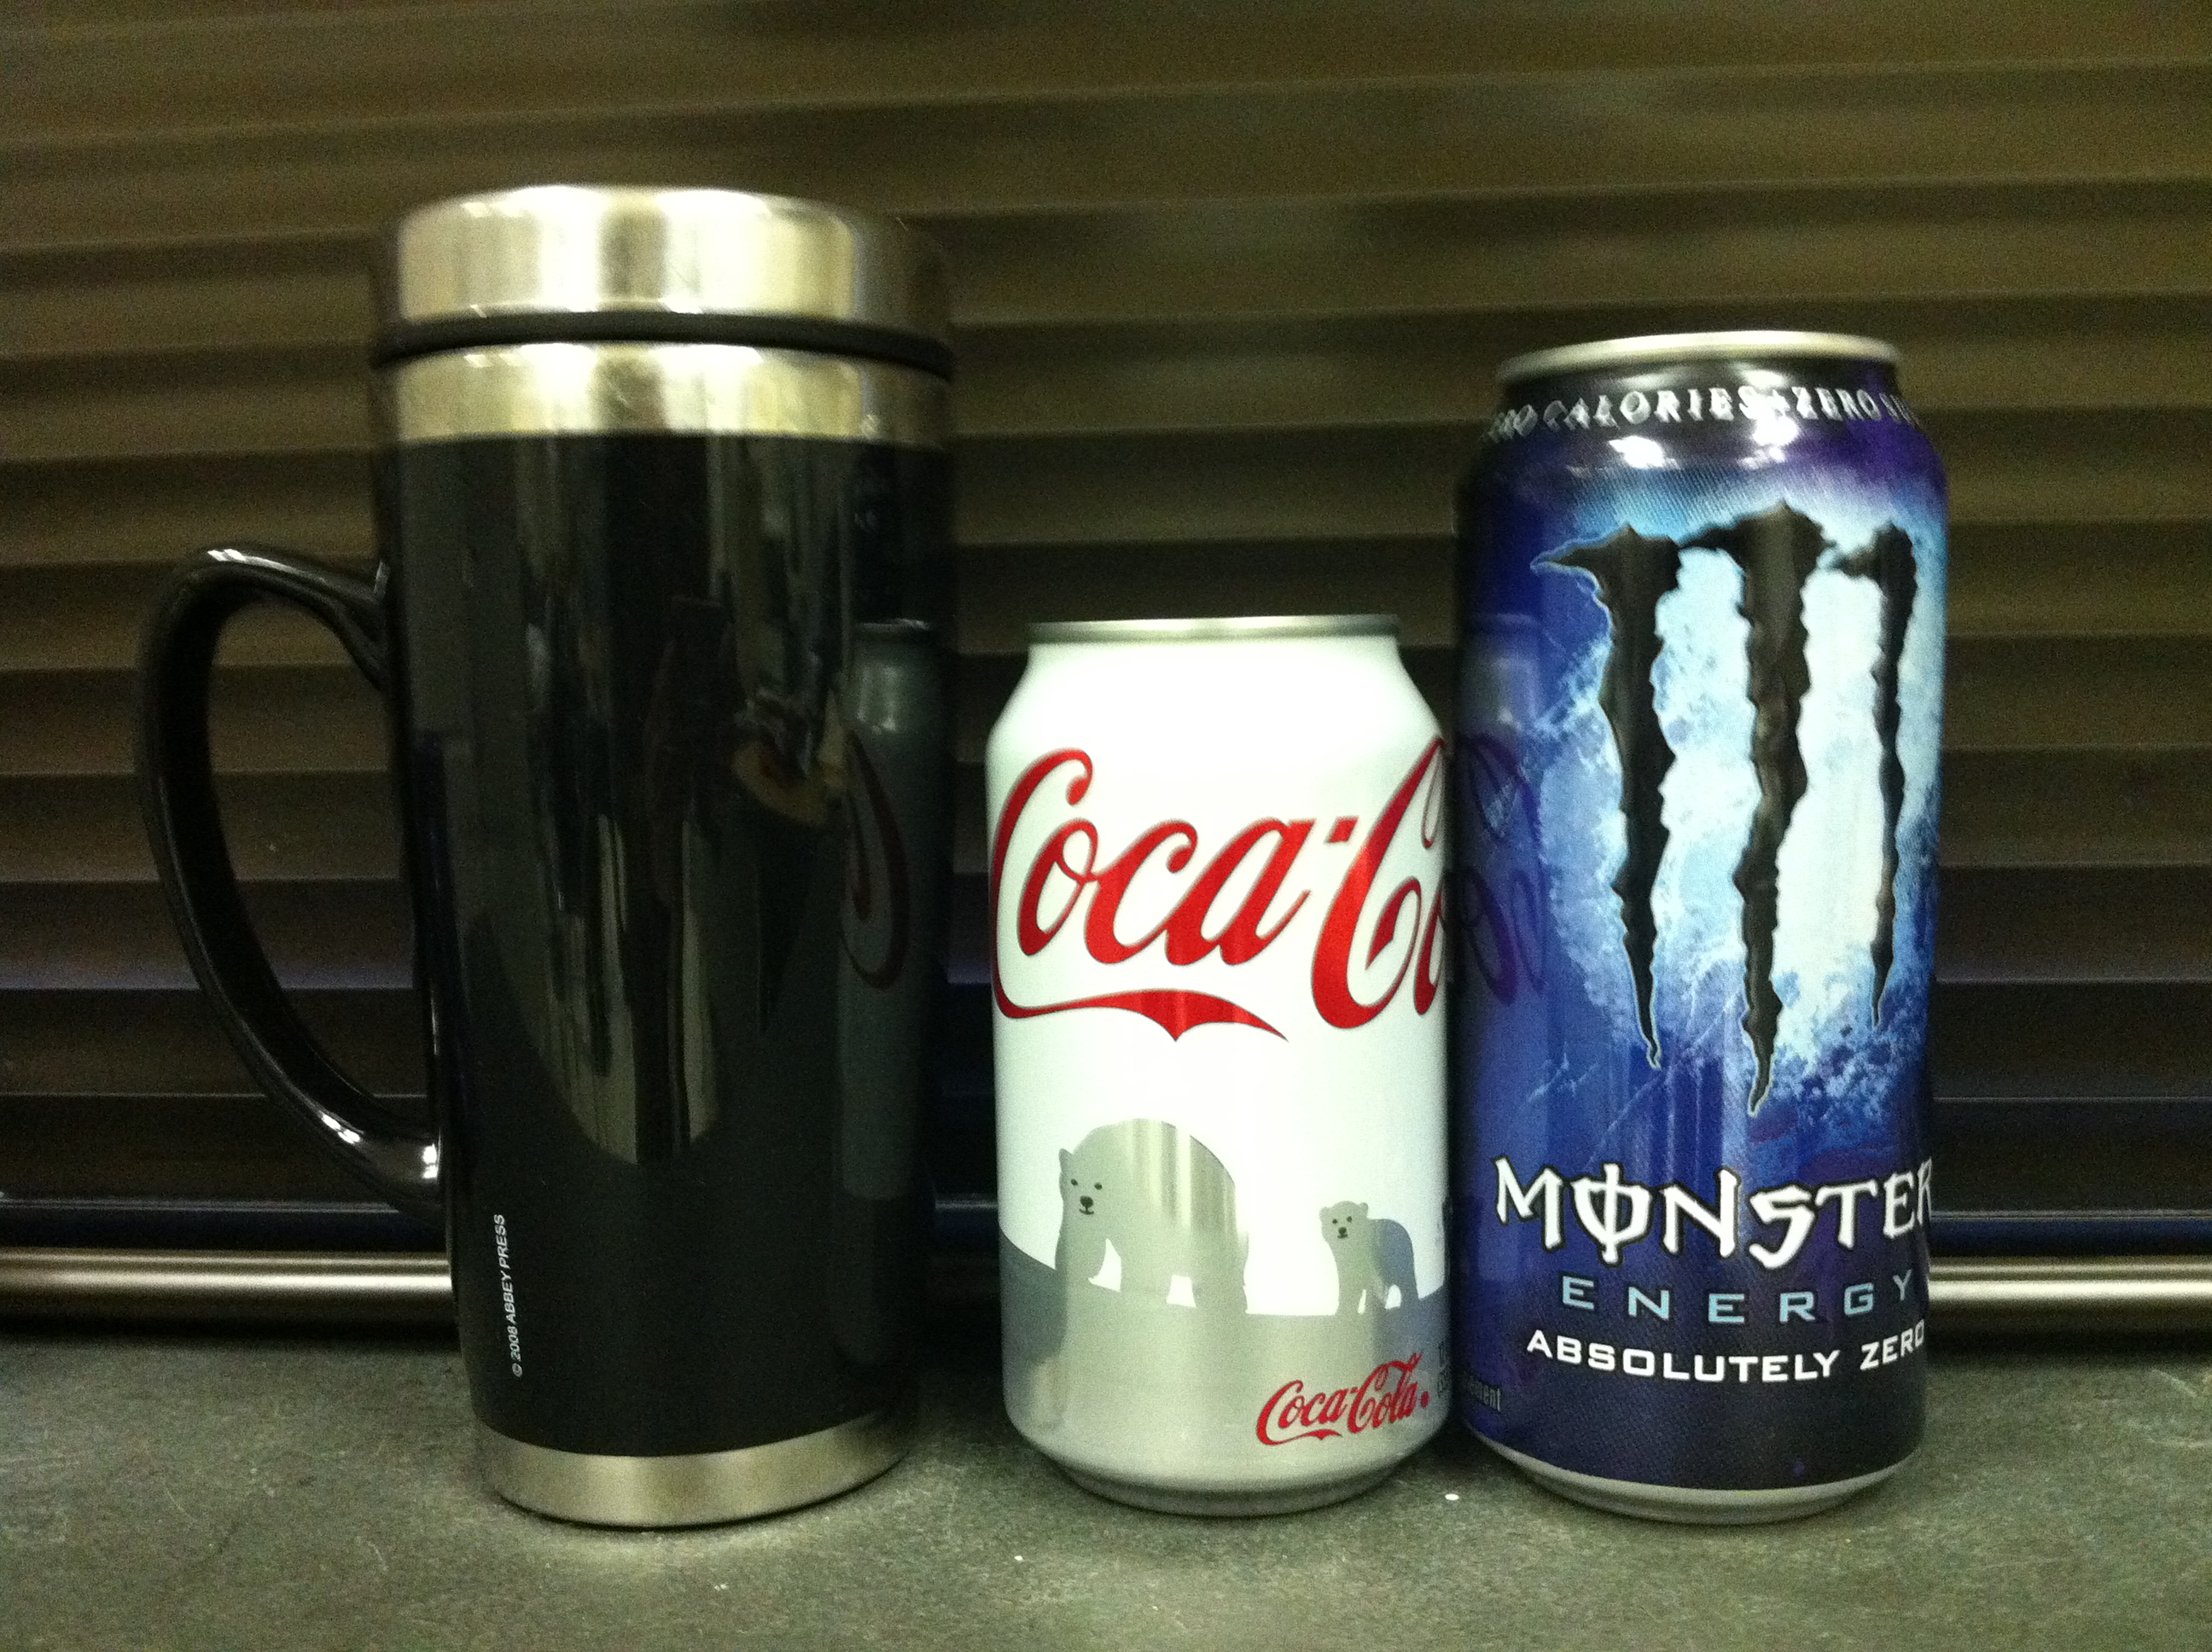 energy drink caffeine essay Caffeine essay caffeine and how it effects your health  caffeine is a substance found in coffee, tea and most sodas when it is consumed, it is a mild stimulant the energy drink, monster, contains caffeine, which has the ability to manipulate adenosine (adrenaline), a substance present in the brain that is used to transmit brain signals.